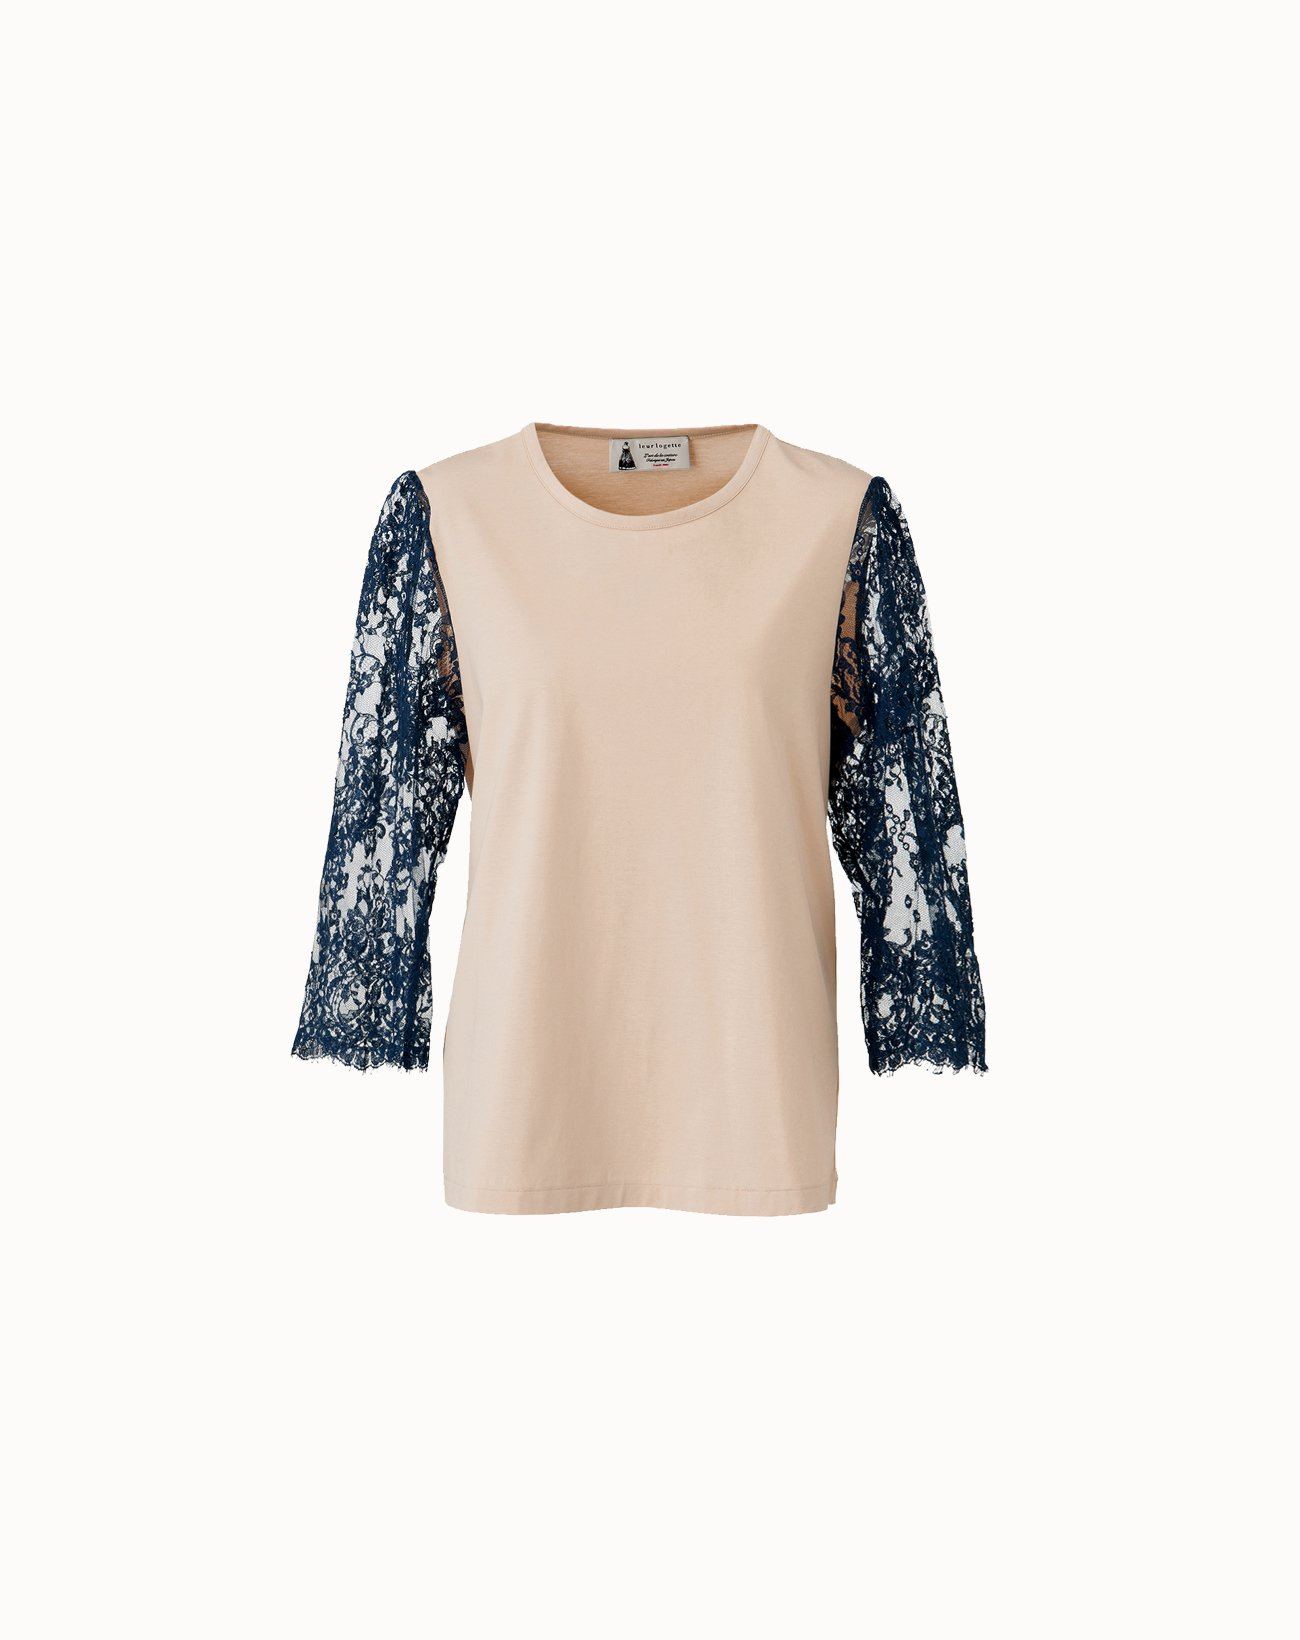 Compact Cotton Sleeve Lace Top - Beige*Navy